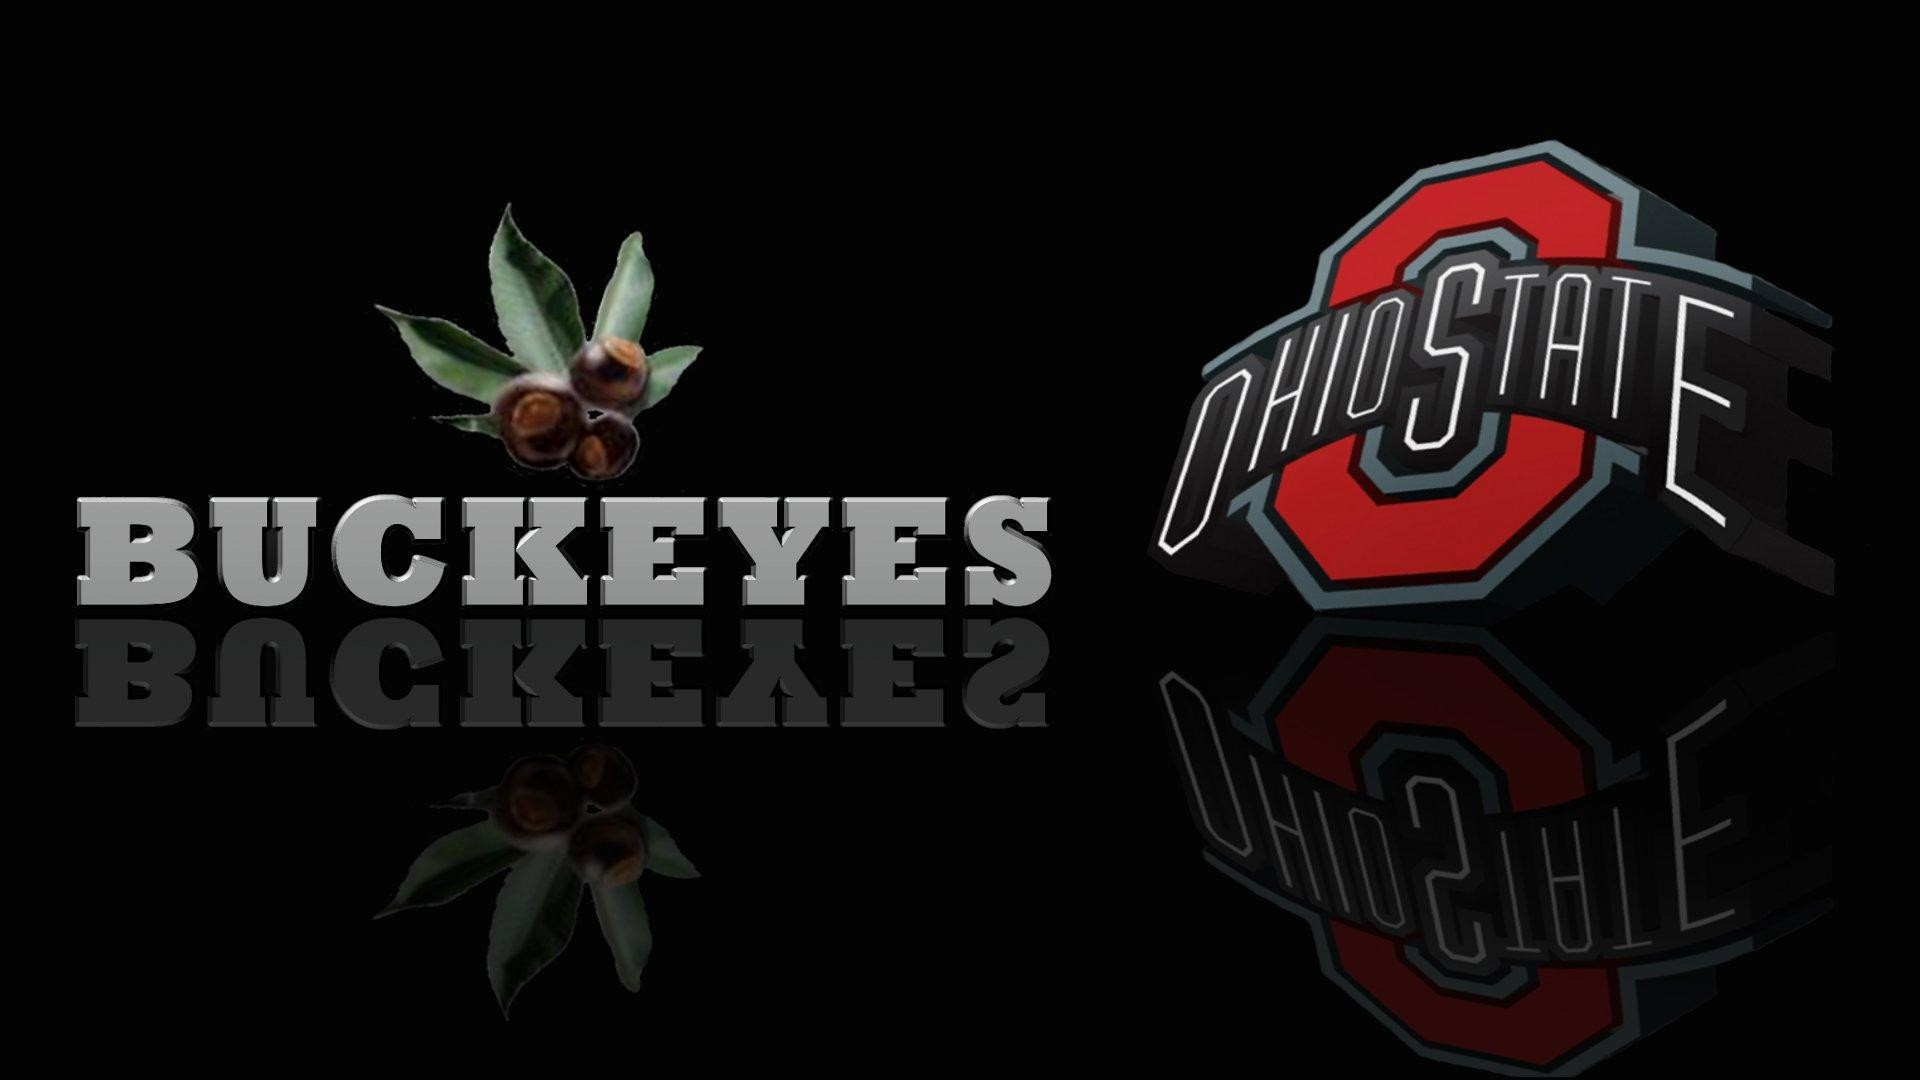 1920x1080 wallpaper.wiki-Original-screensavers-buckeyenuts-state-american-football- wallpapers-PIC-WPB00825